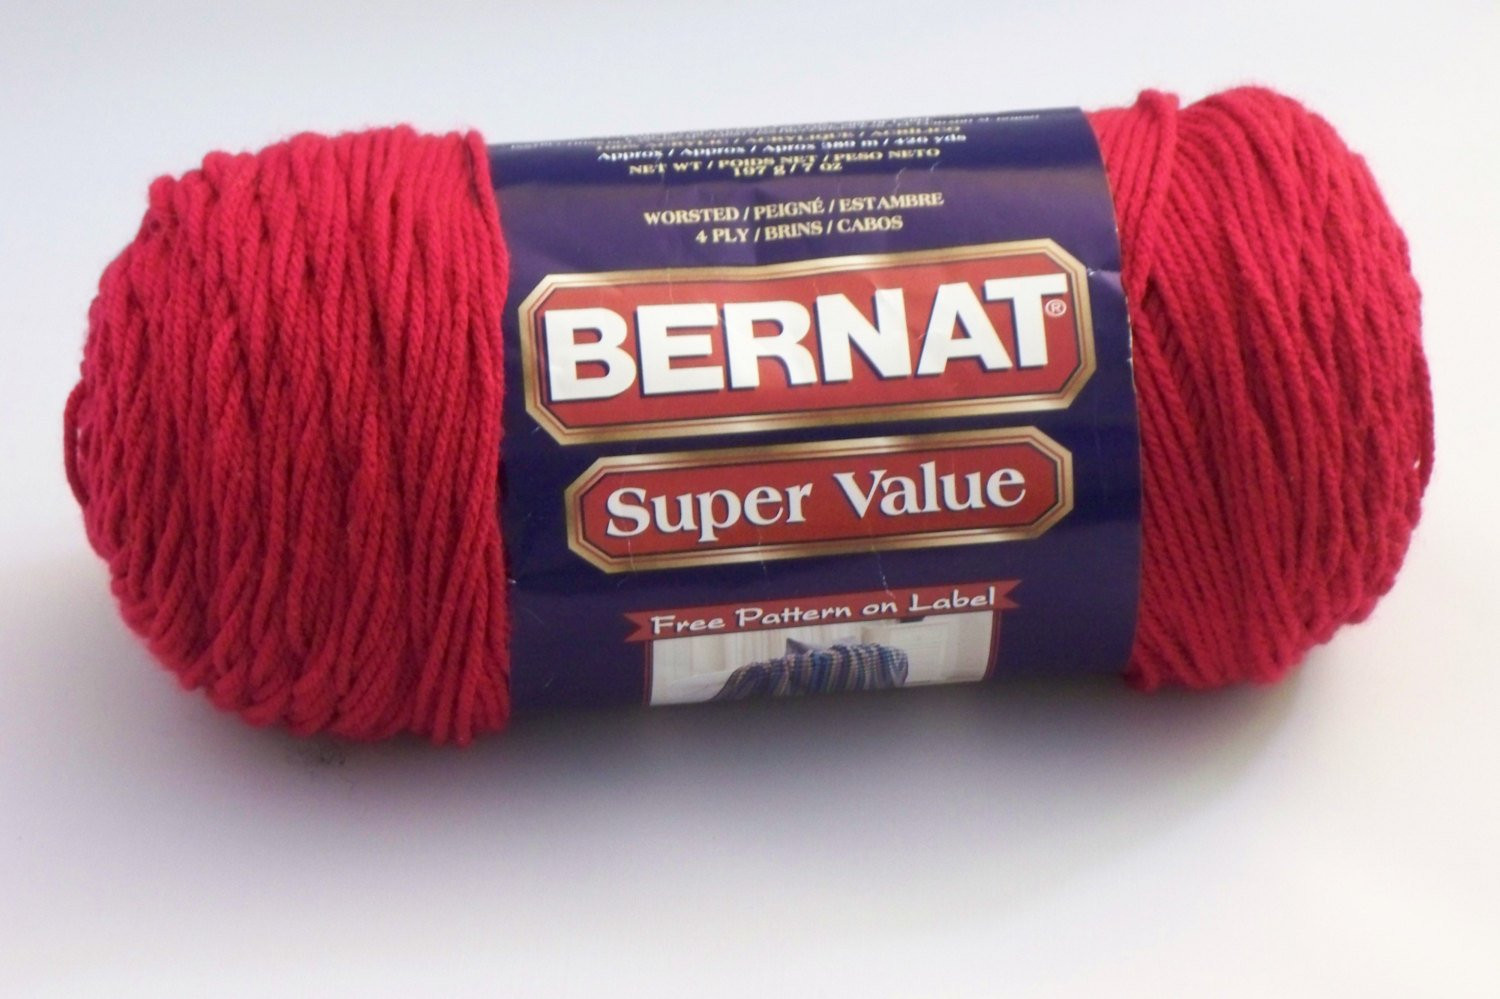 Bernat Super Value Awesome Yarn Bernat Super Value Yarn Cherry Red Of Beautiful 46 Pics Bernat Super Value